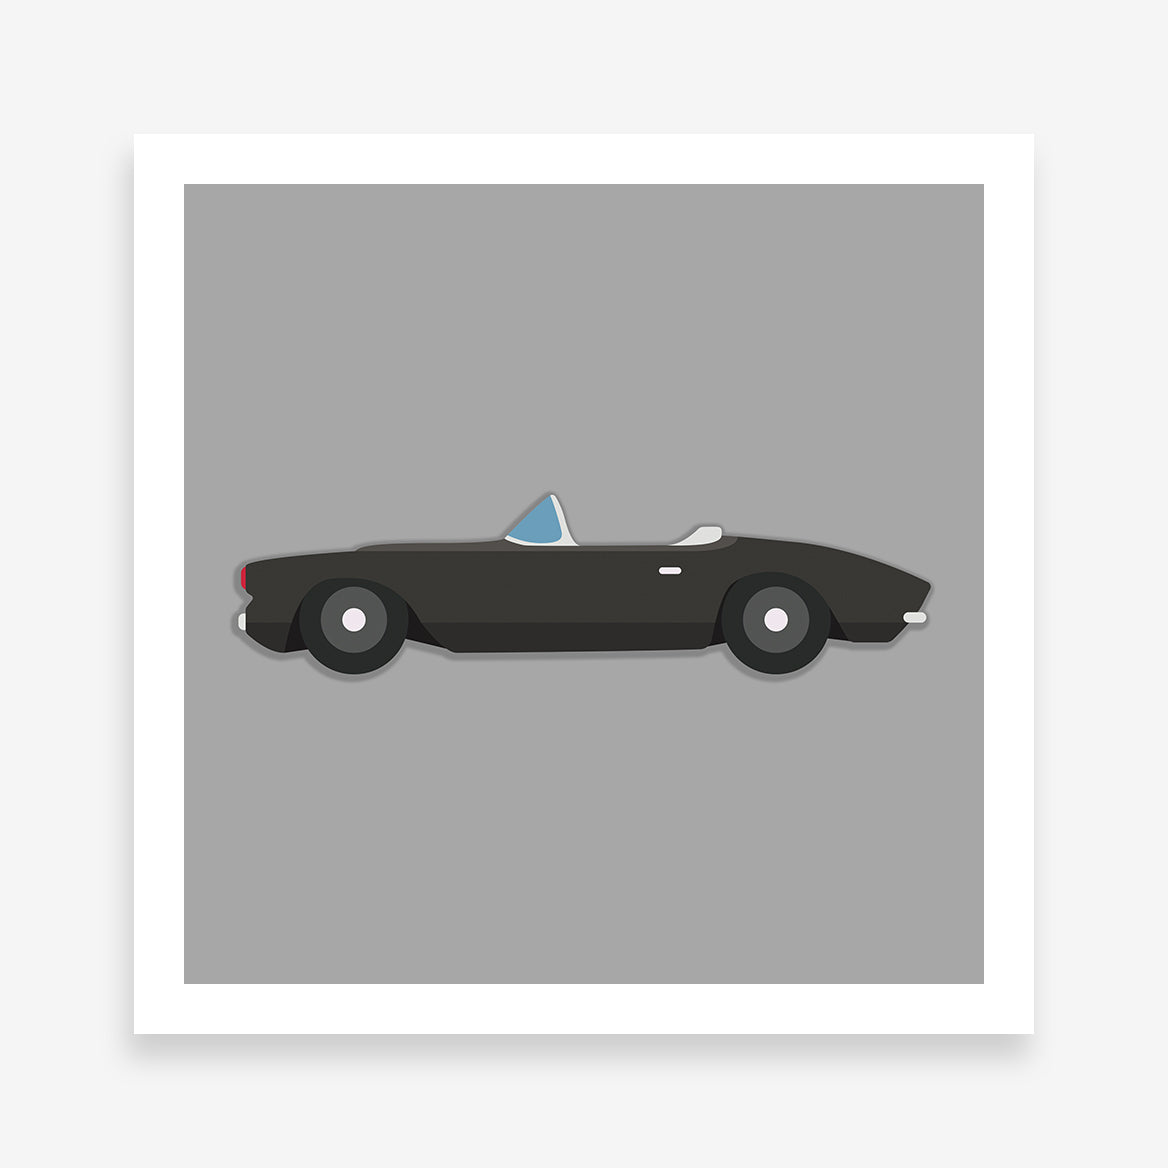 Poster print with a black convertible classic car on a grey background.